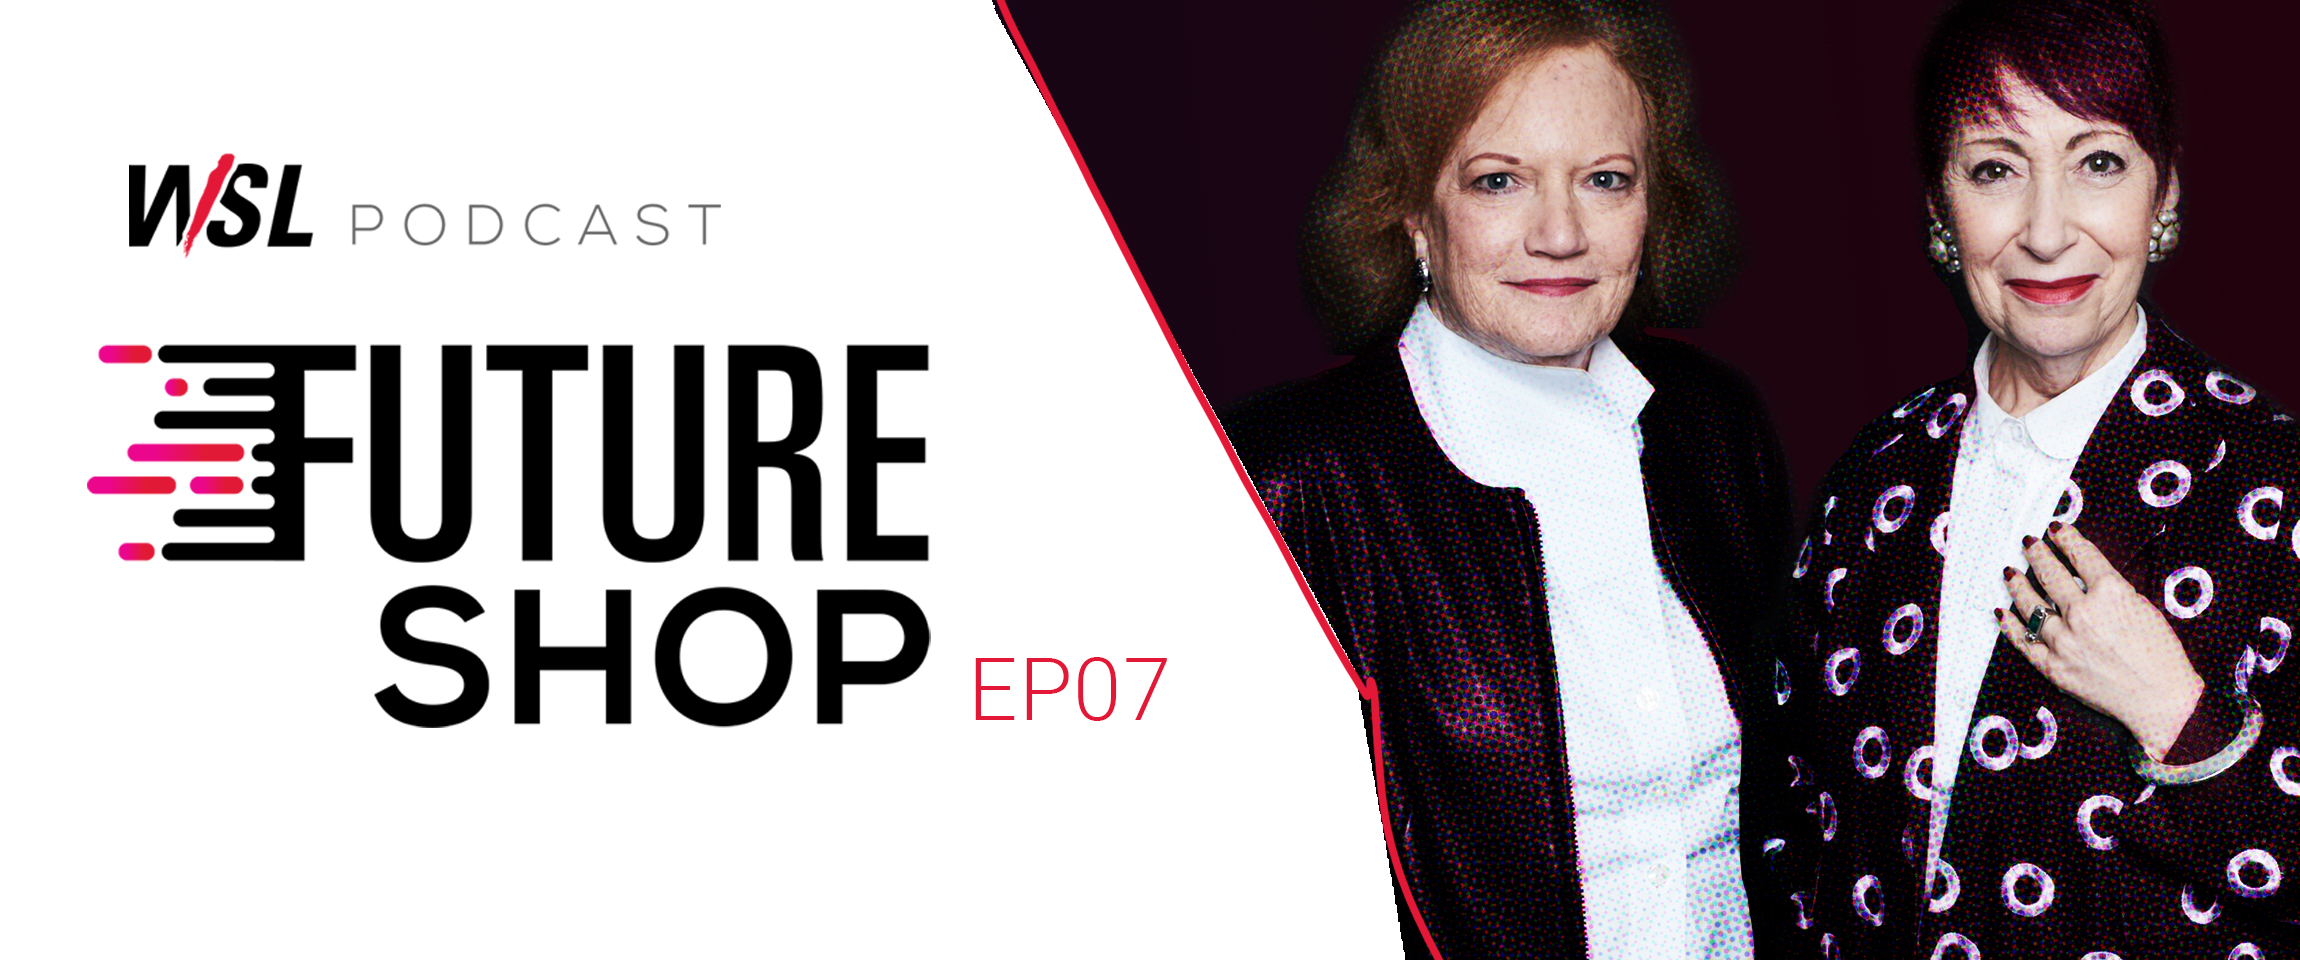 Will Shoppers Ever Go Back to the Store? - Future Shop Podcast EP07